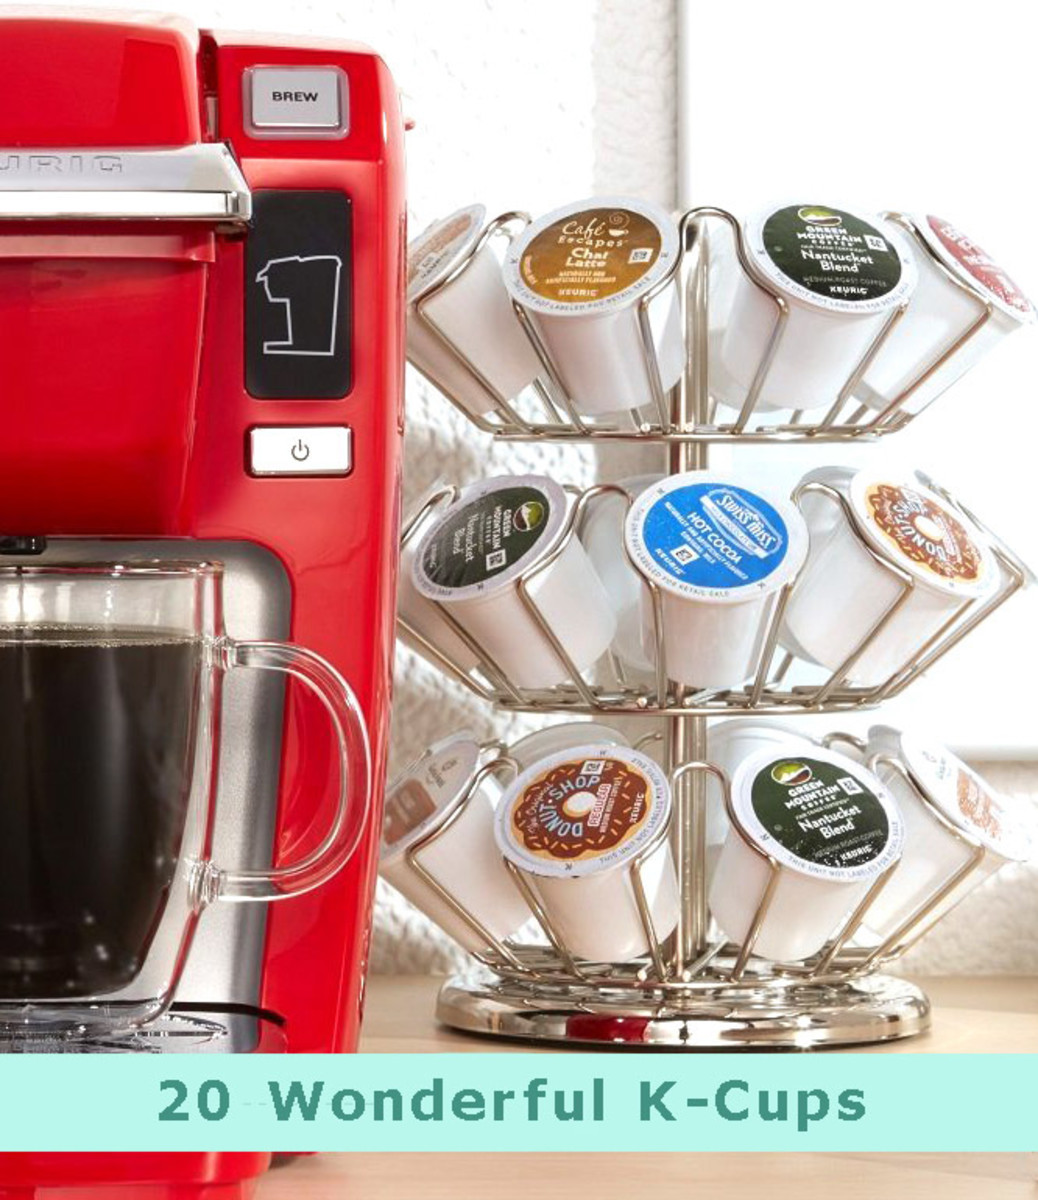 20 Wonderful K-Cups: Coffees, Teas, Cocoas and Herbal Preparations